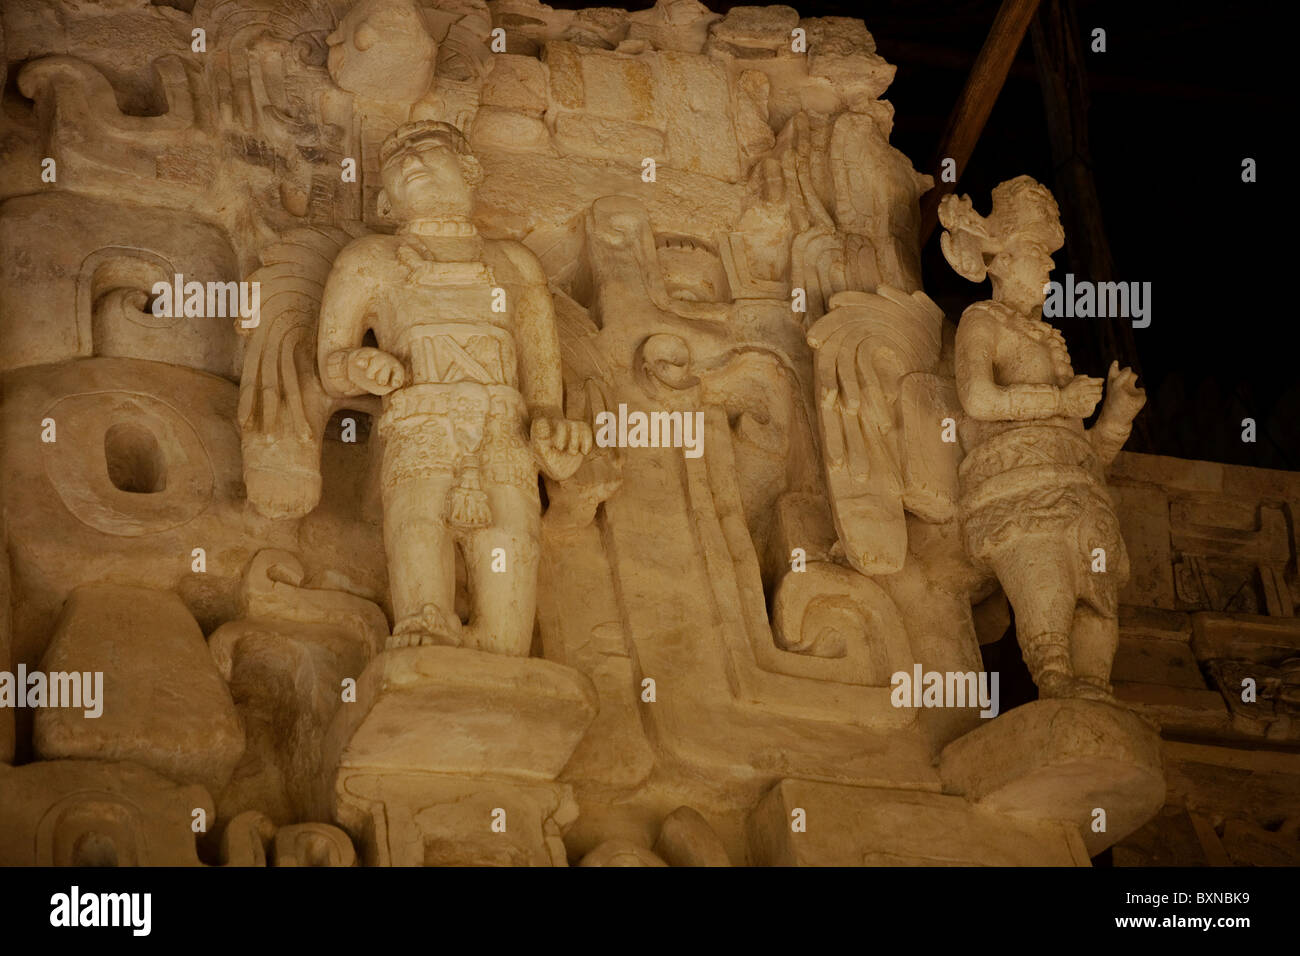 Stucco sculptures representing men with wings decorates a temple among the Mayan ruins of Ek Balam in Mexico's - Stock Image